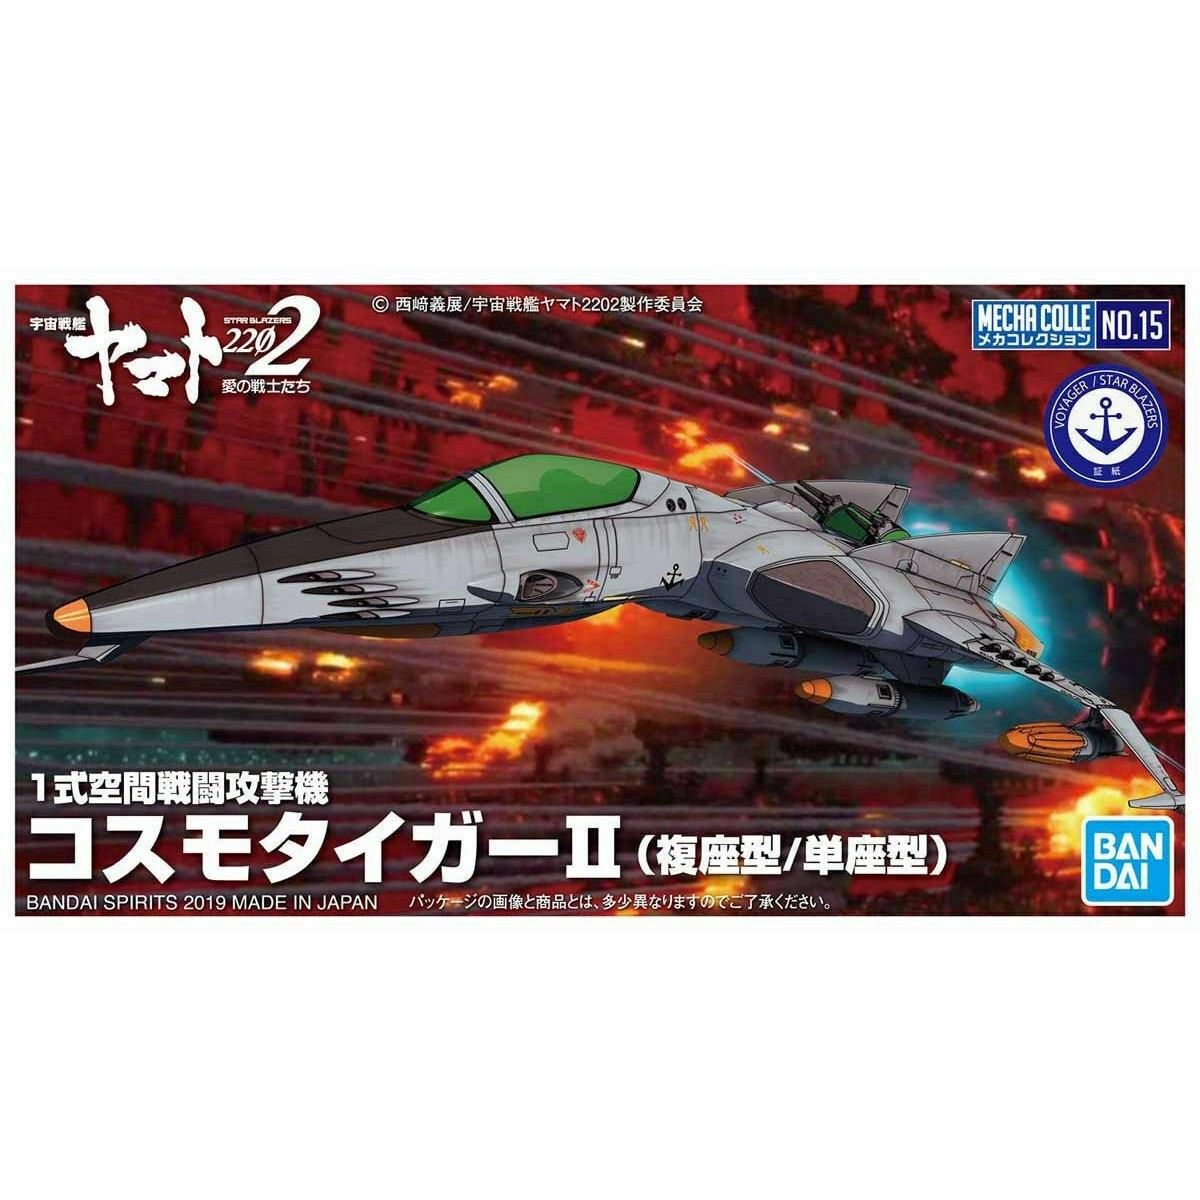 SPACE BATTLESHIP YAMATO 2202 MECHA COLLE No.15 - TYPE 1SPACE FIGHTER ATTACK CRAFT COSMO TIGER II (Double Seater/Single Seater) - PLASTIC MODEL KIT